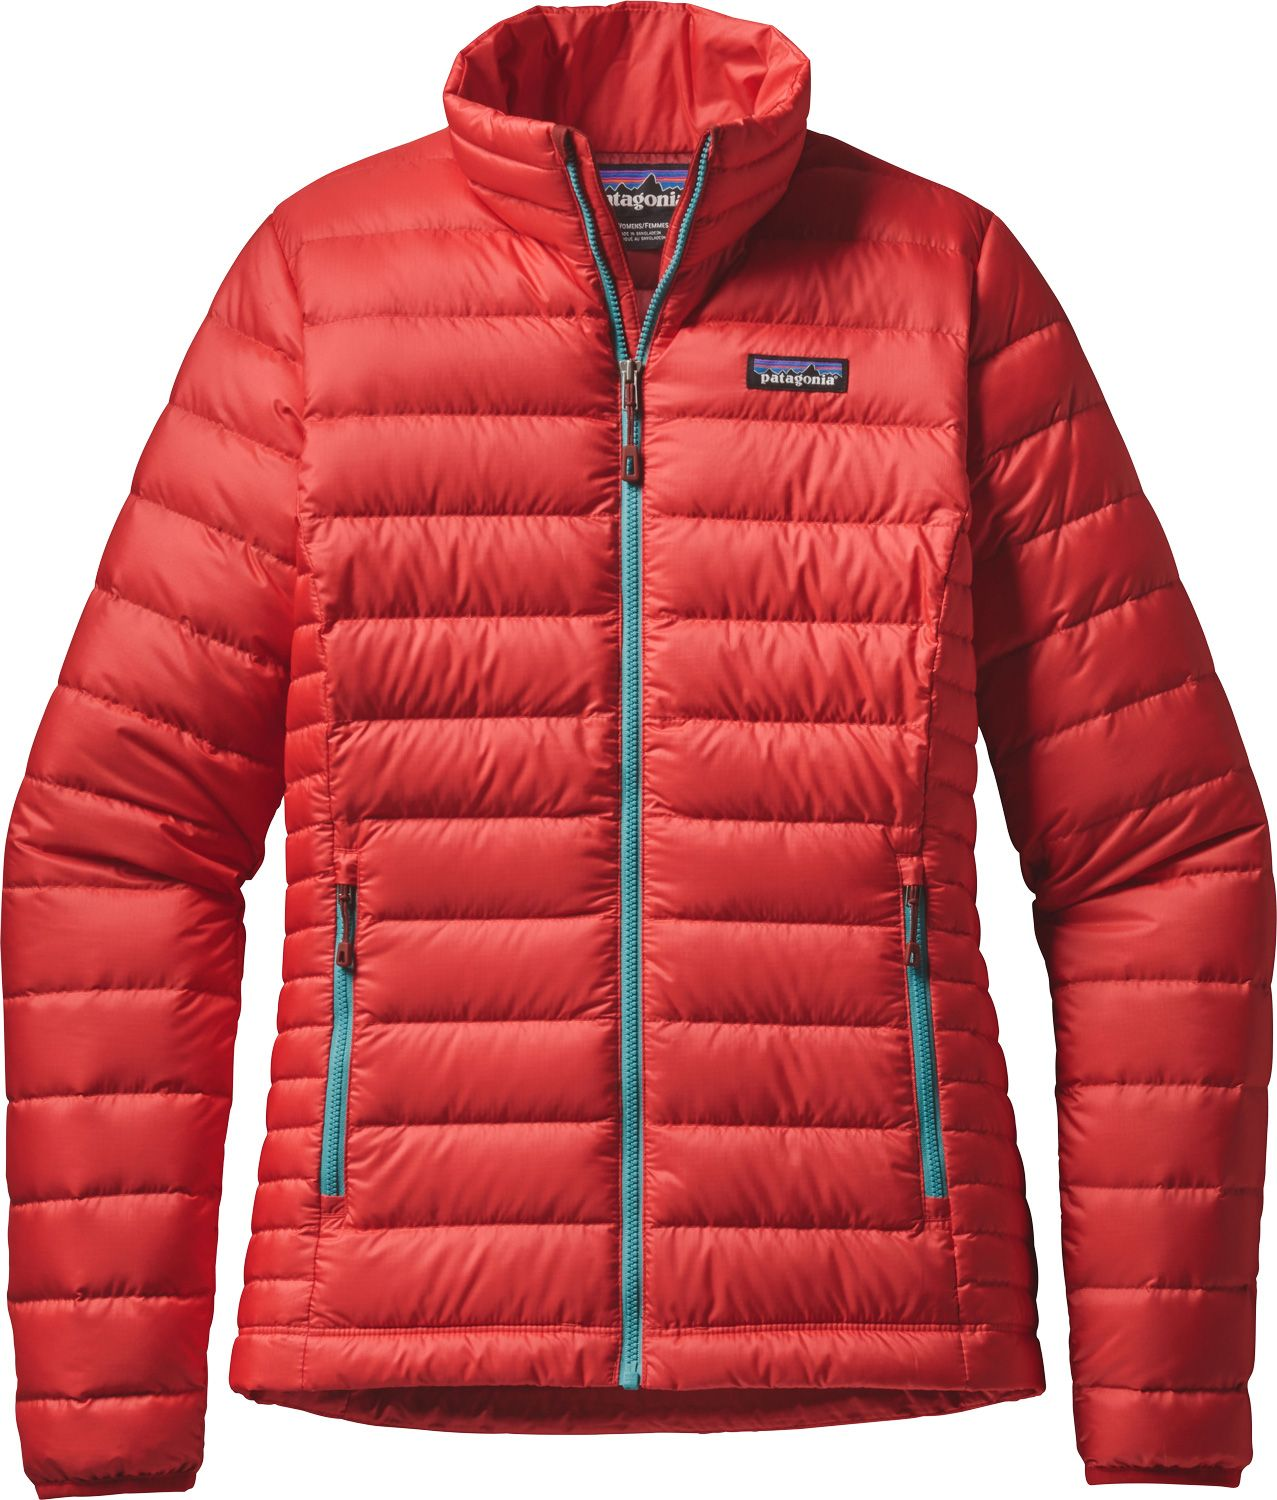 Patagonia Women's Down Sweater Jacket | DICK'S Sporting Goods